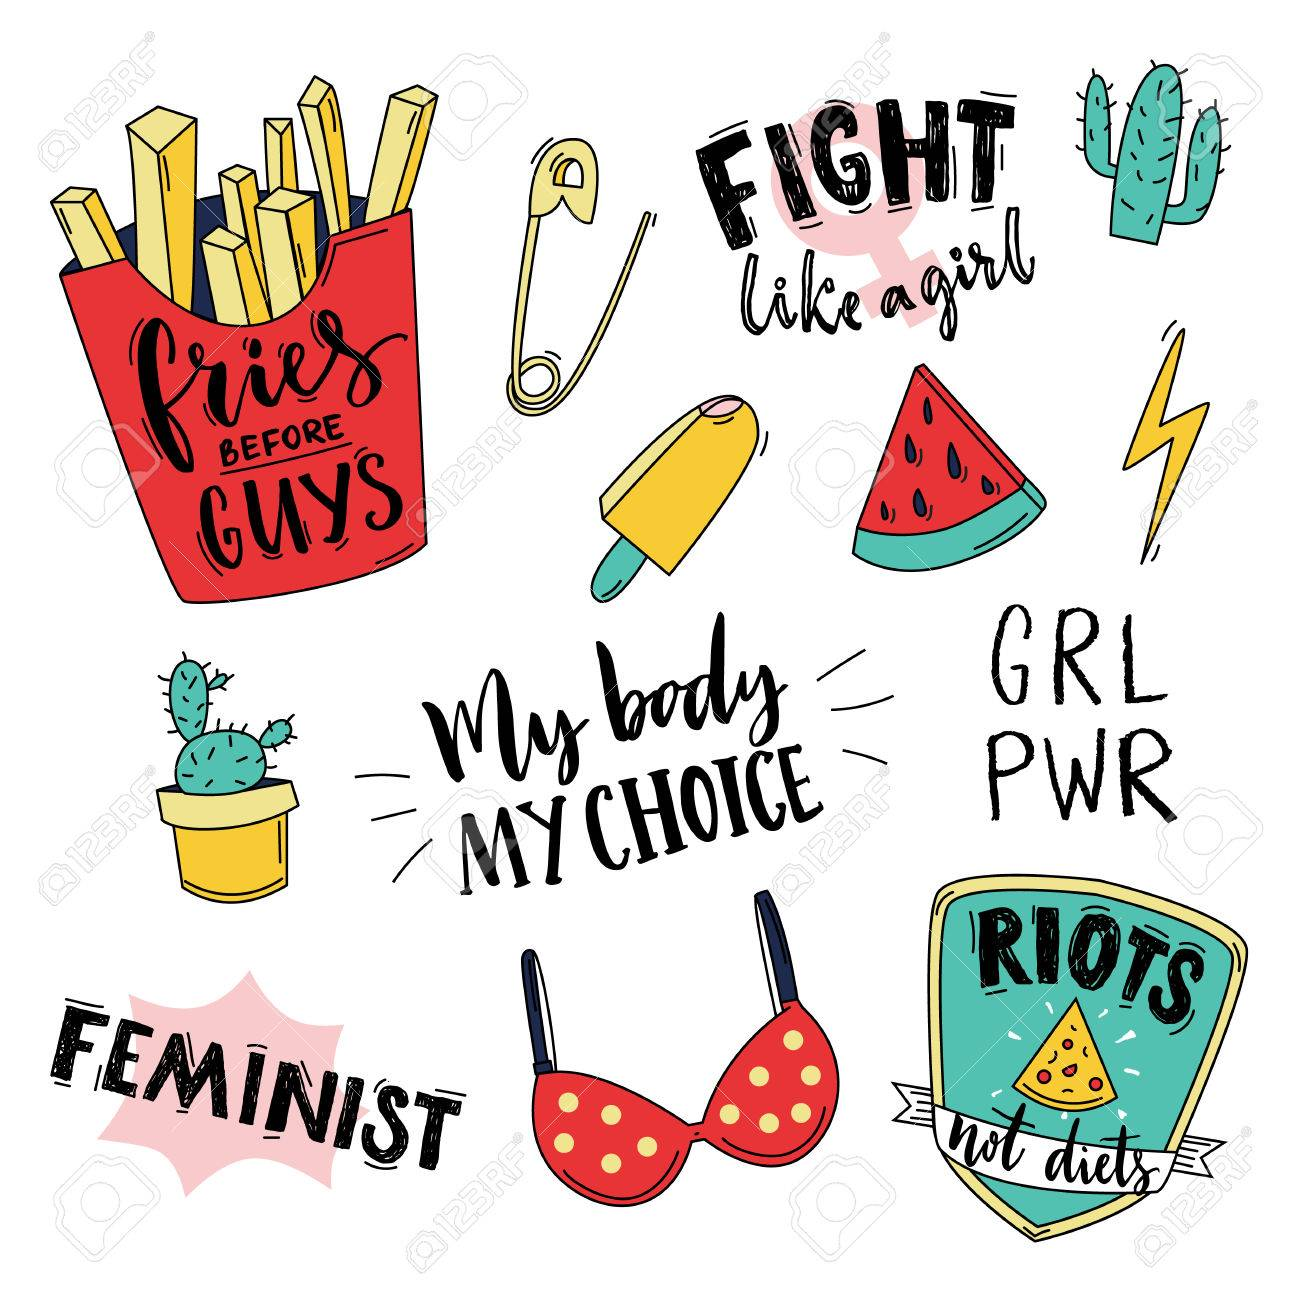 Feminism Slogan And Patches Vector 80s Style Design Vintage